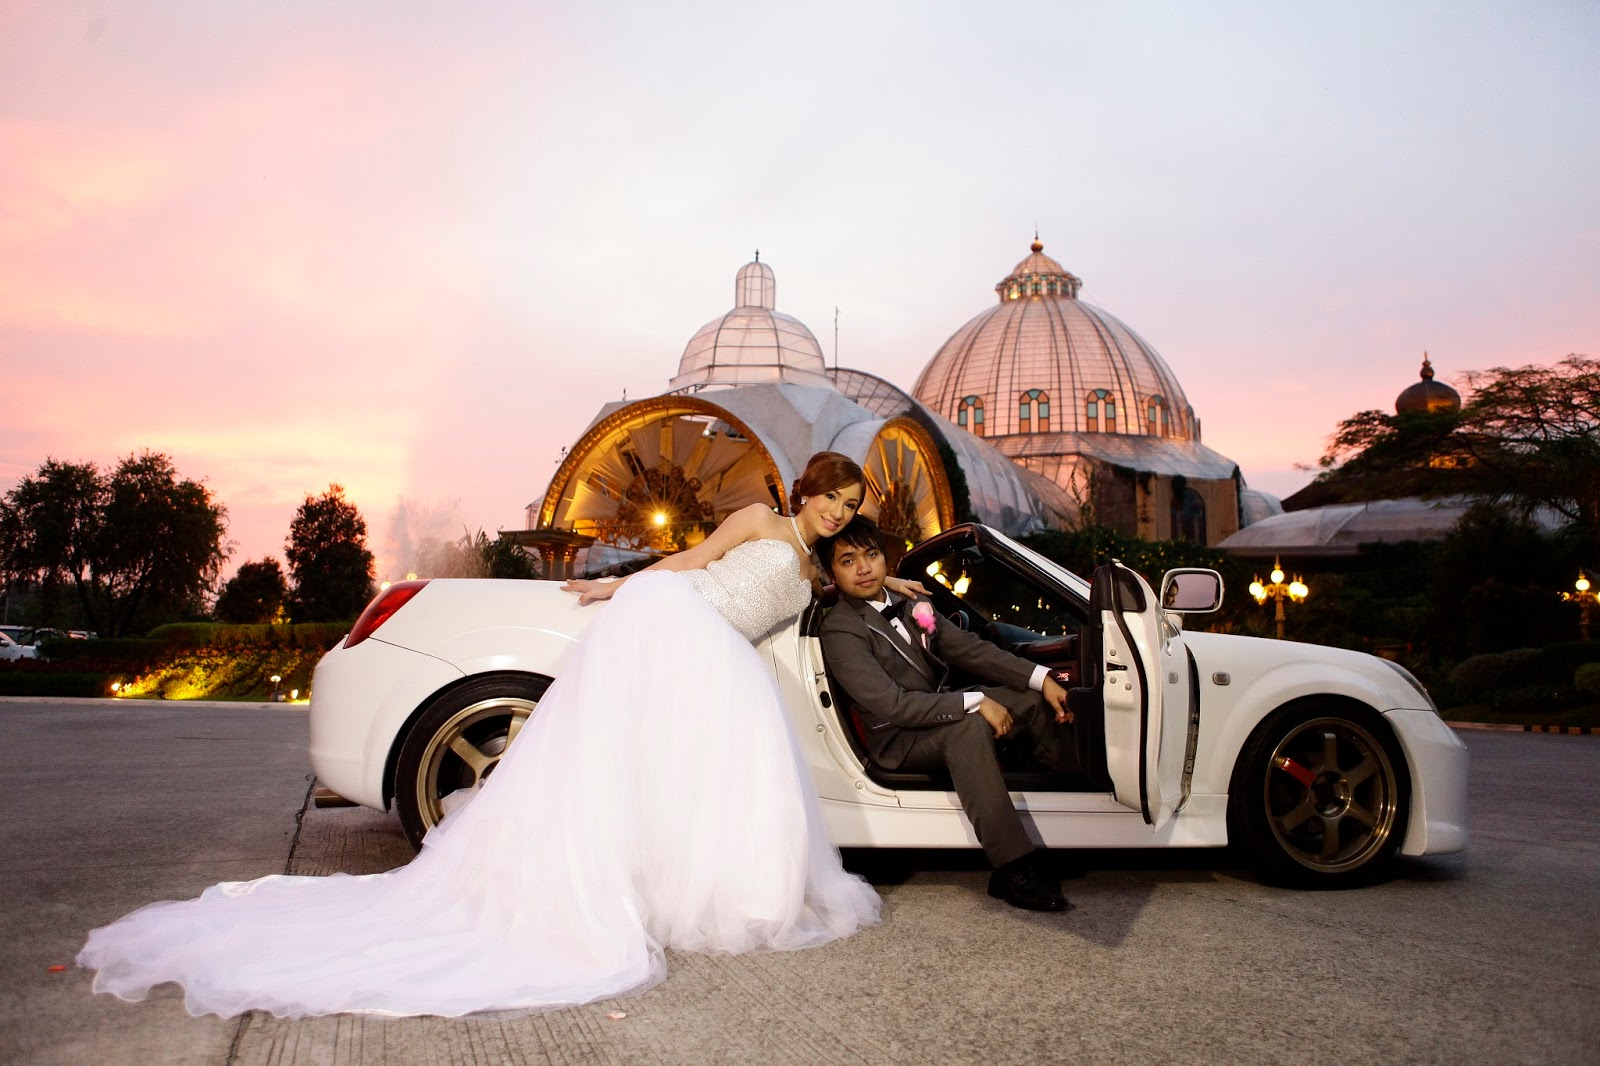 Design of bridal car - Settle Only With The Best For A Once In A Lifetme Event